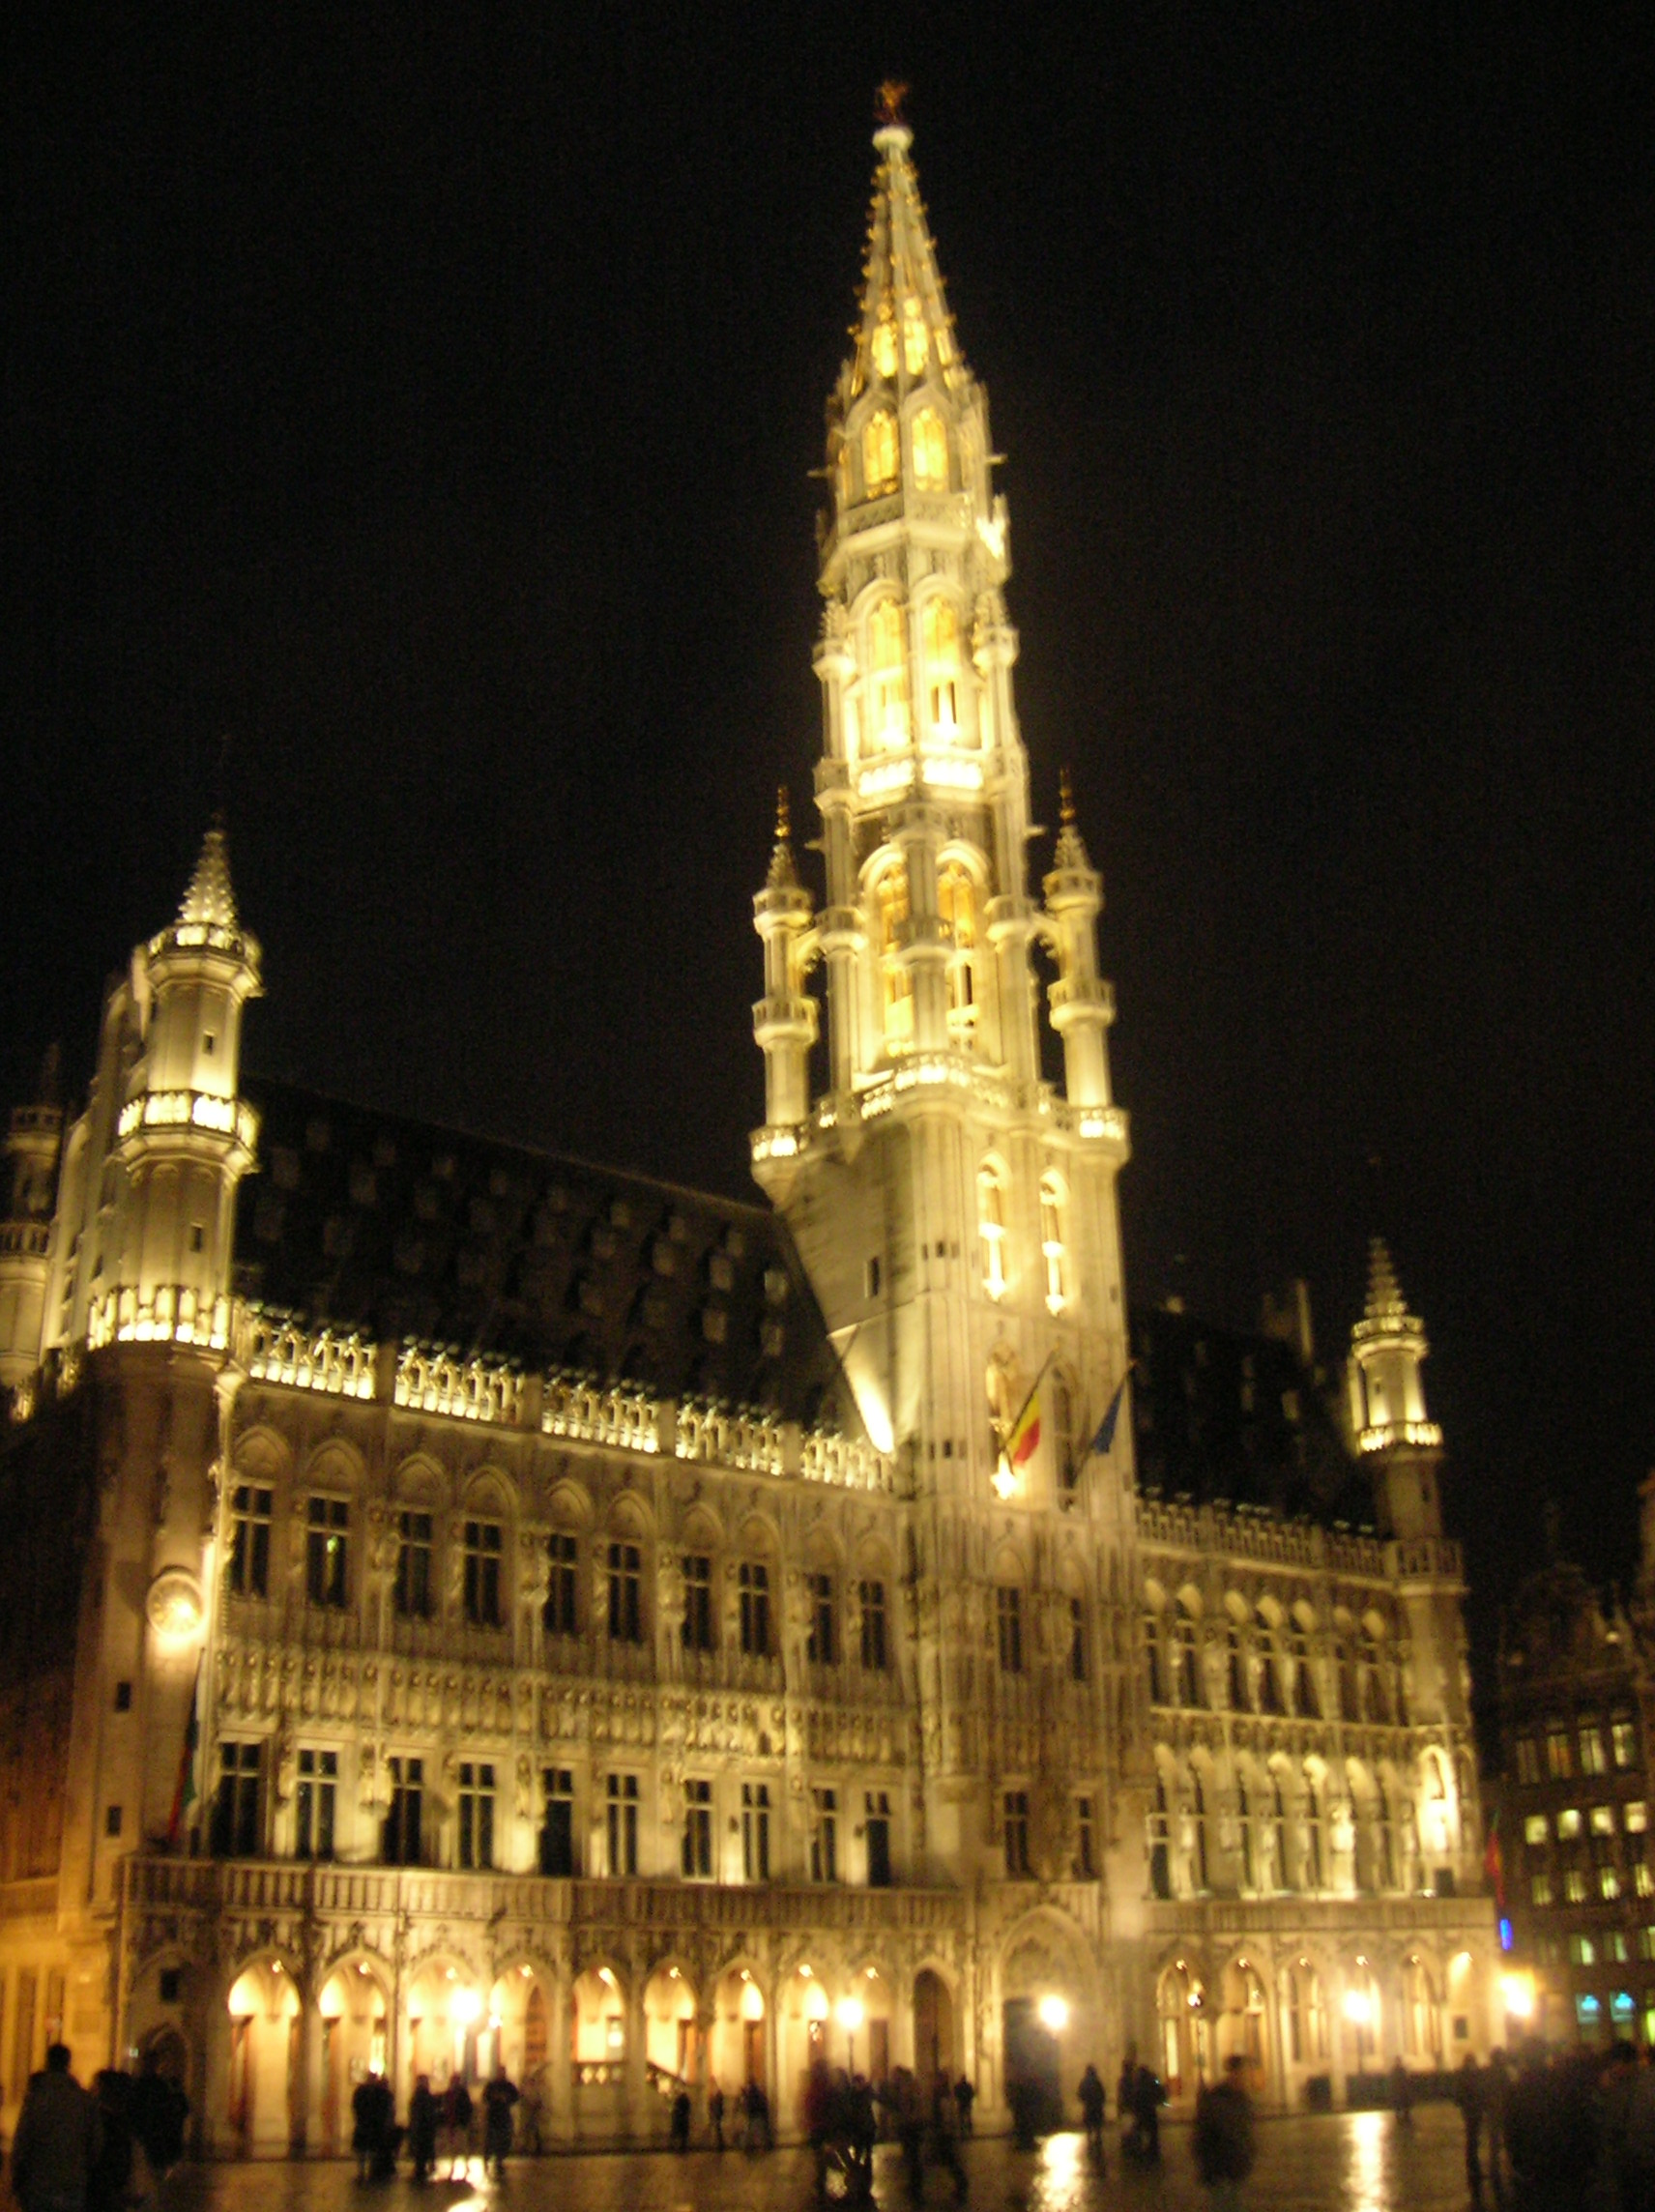 File:Brussels Town Hall by night.JPG - Wikimedia Commons